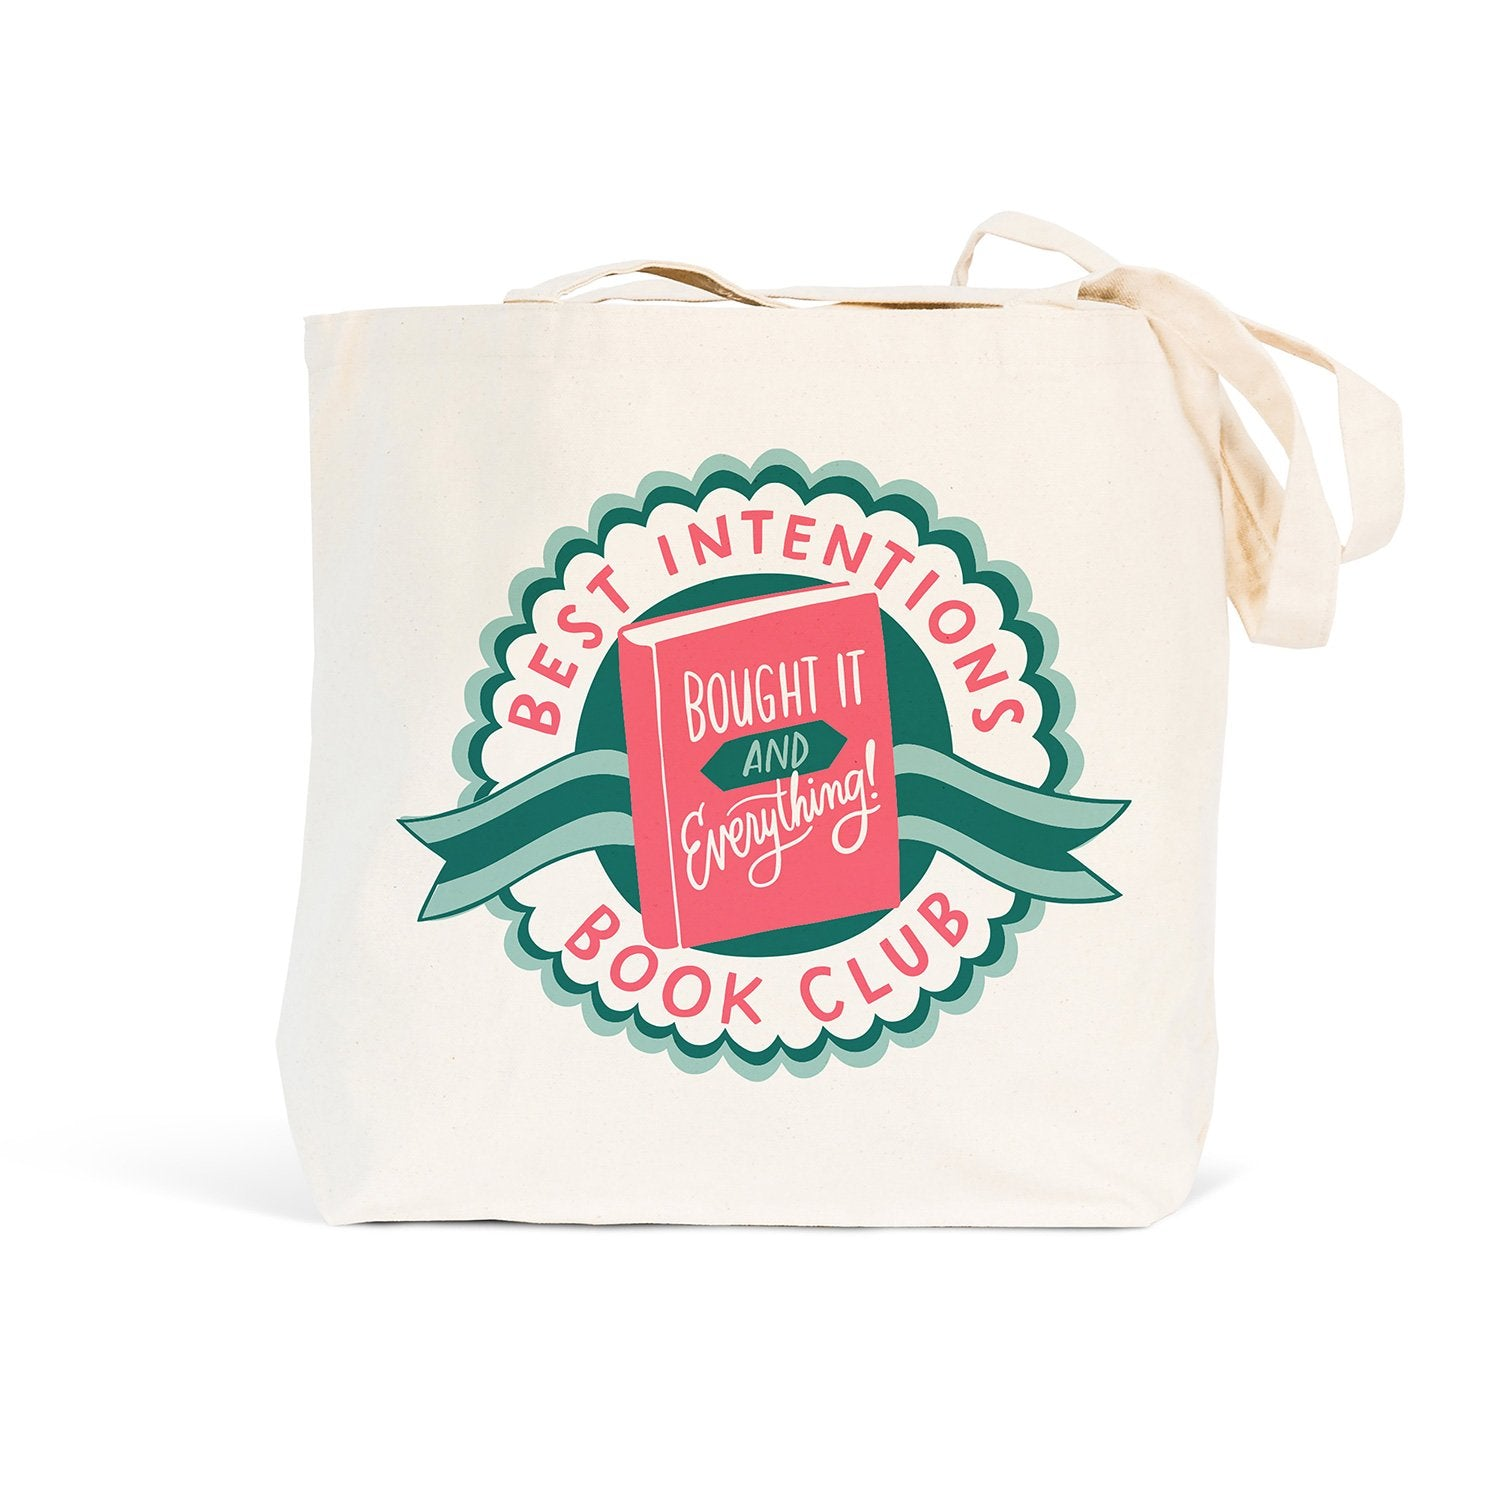 Emily McDowell + Friends Best Intentions Book Club Tote